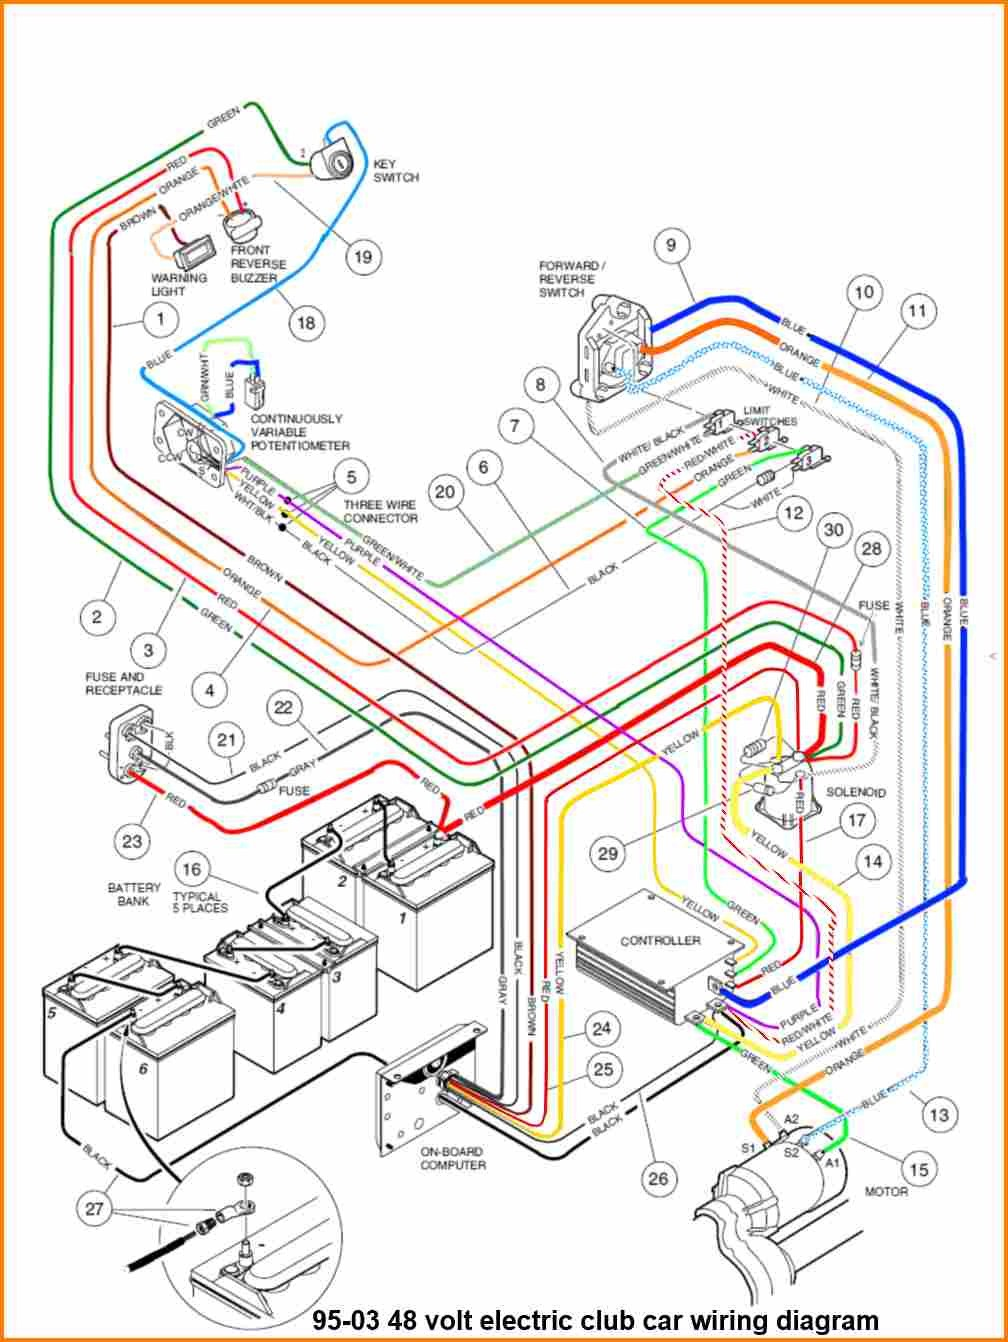 36 volt battery wiring diagram 36 volt golf cart wiring diagram rh janscooker club cart wiring diagram 36v golf cart wiring diagram